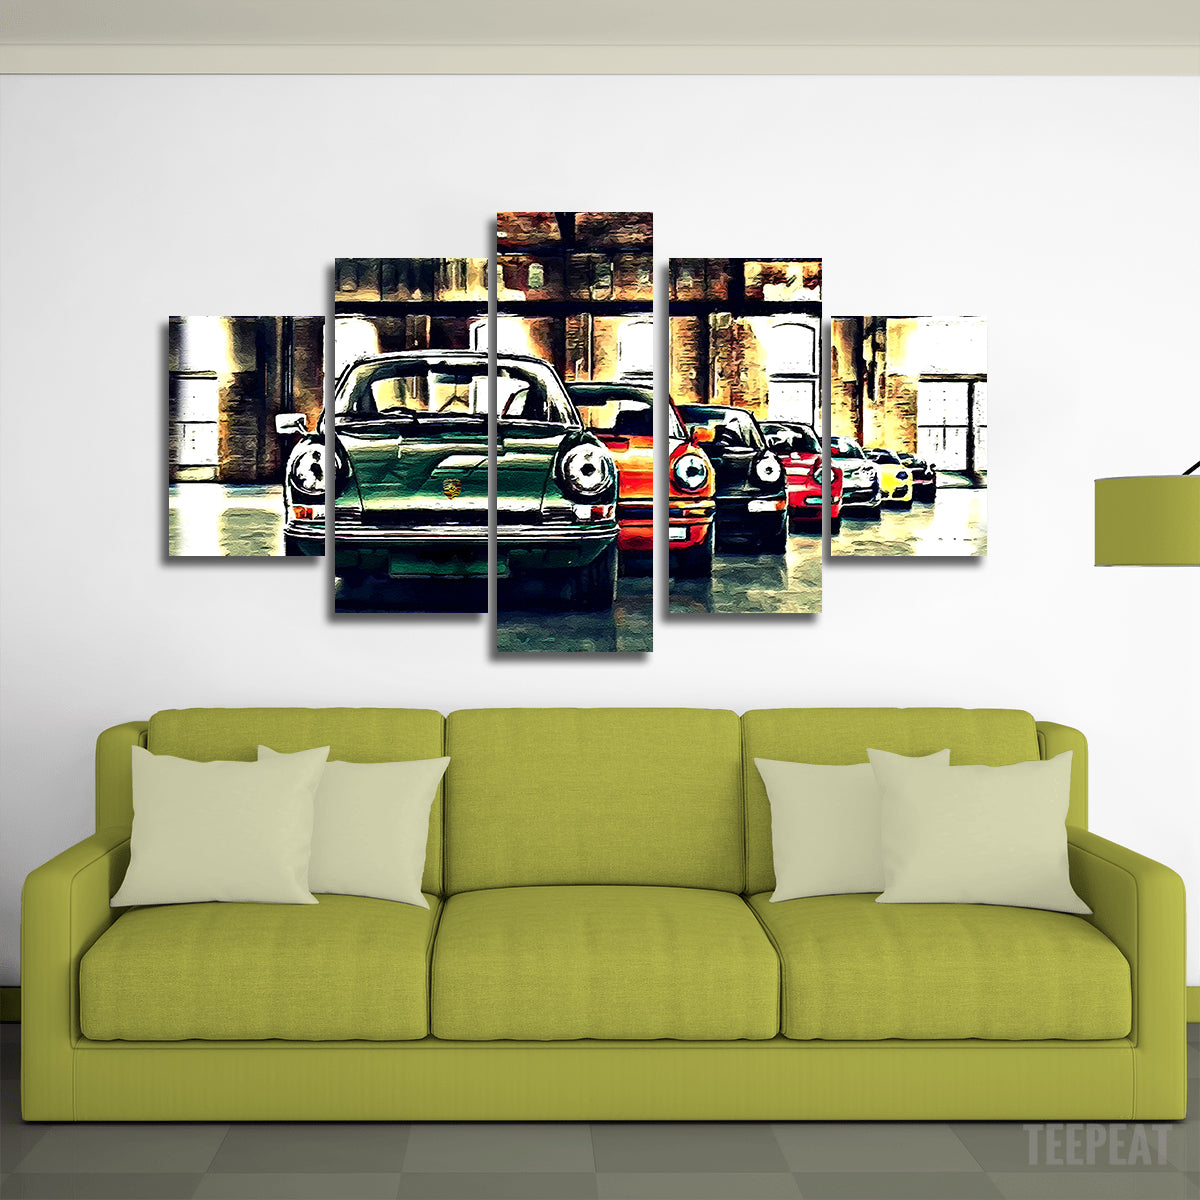 Porsche 911 Canvas Wall Art - TrendySweety